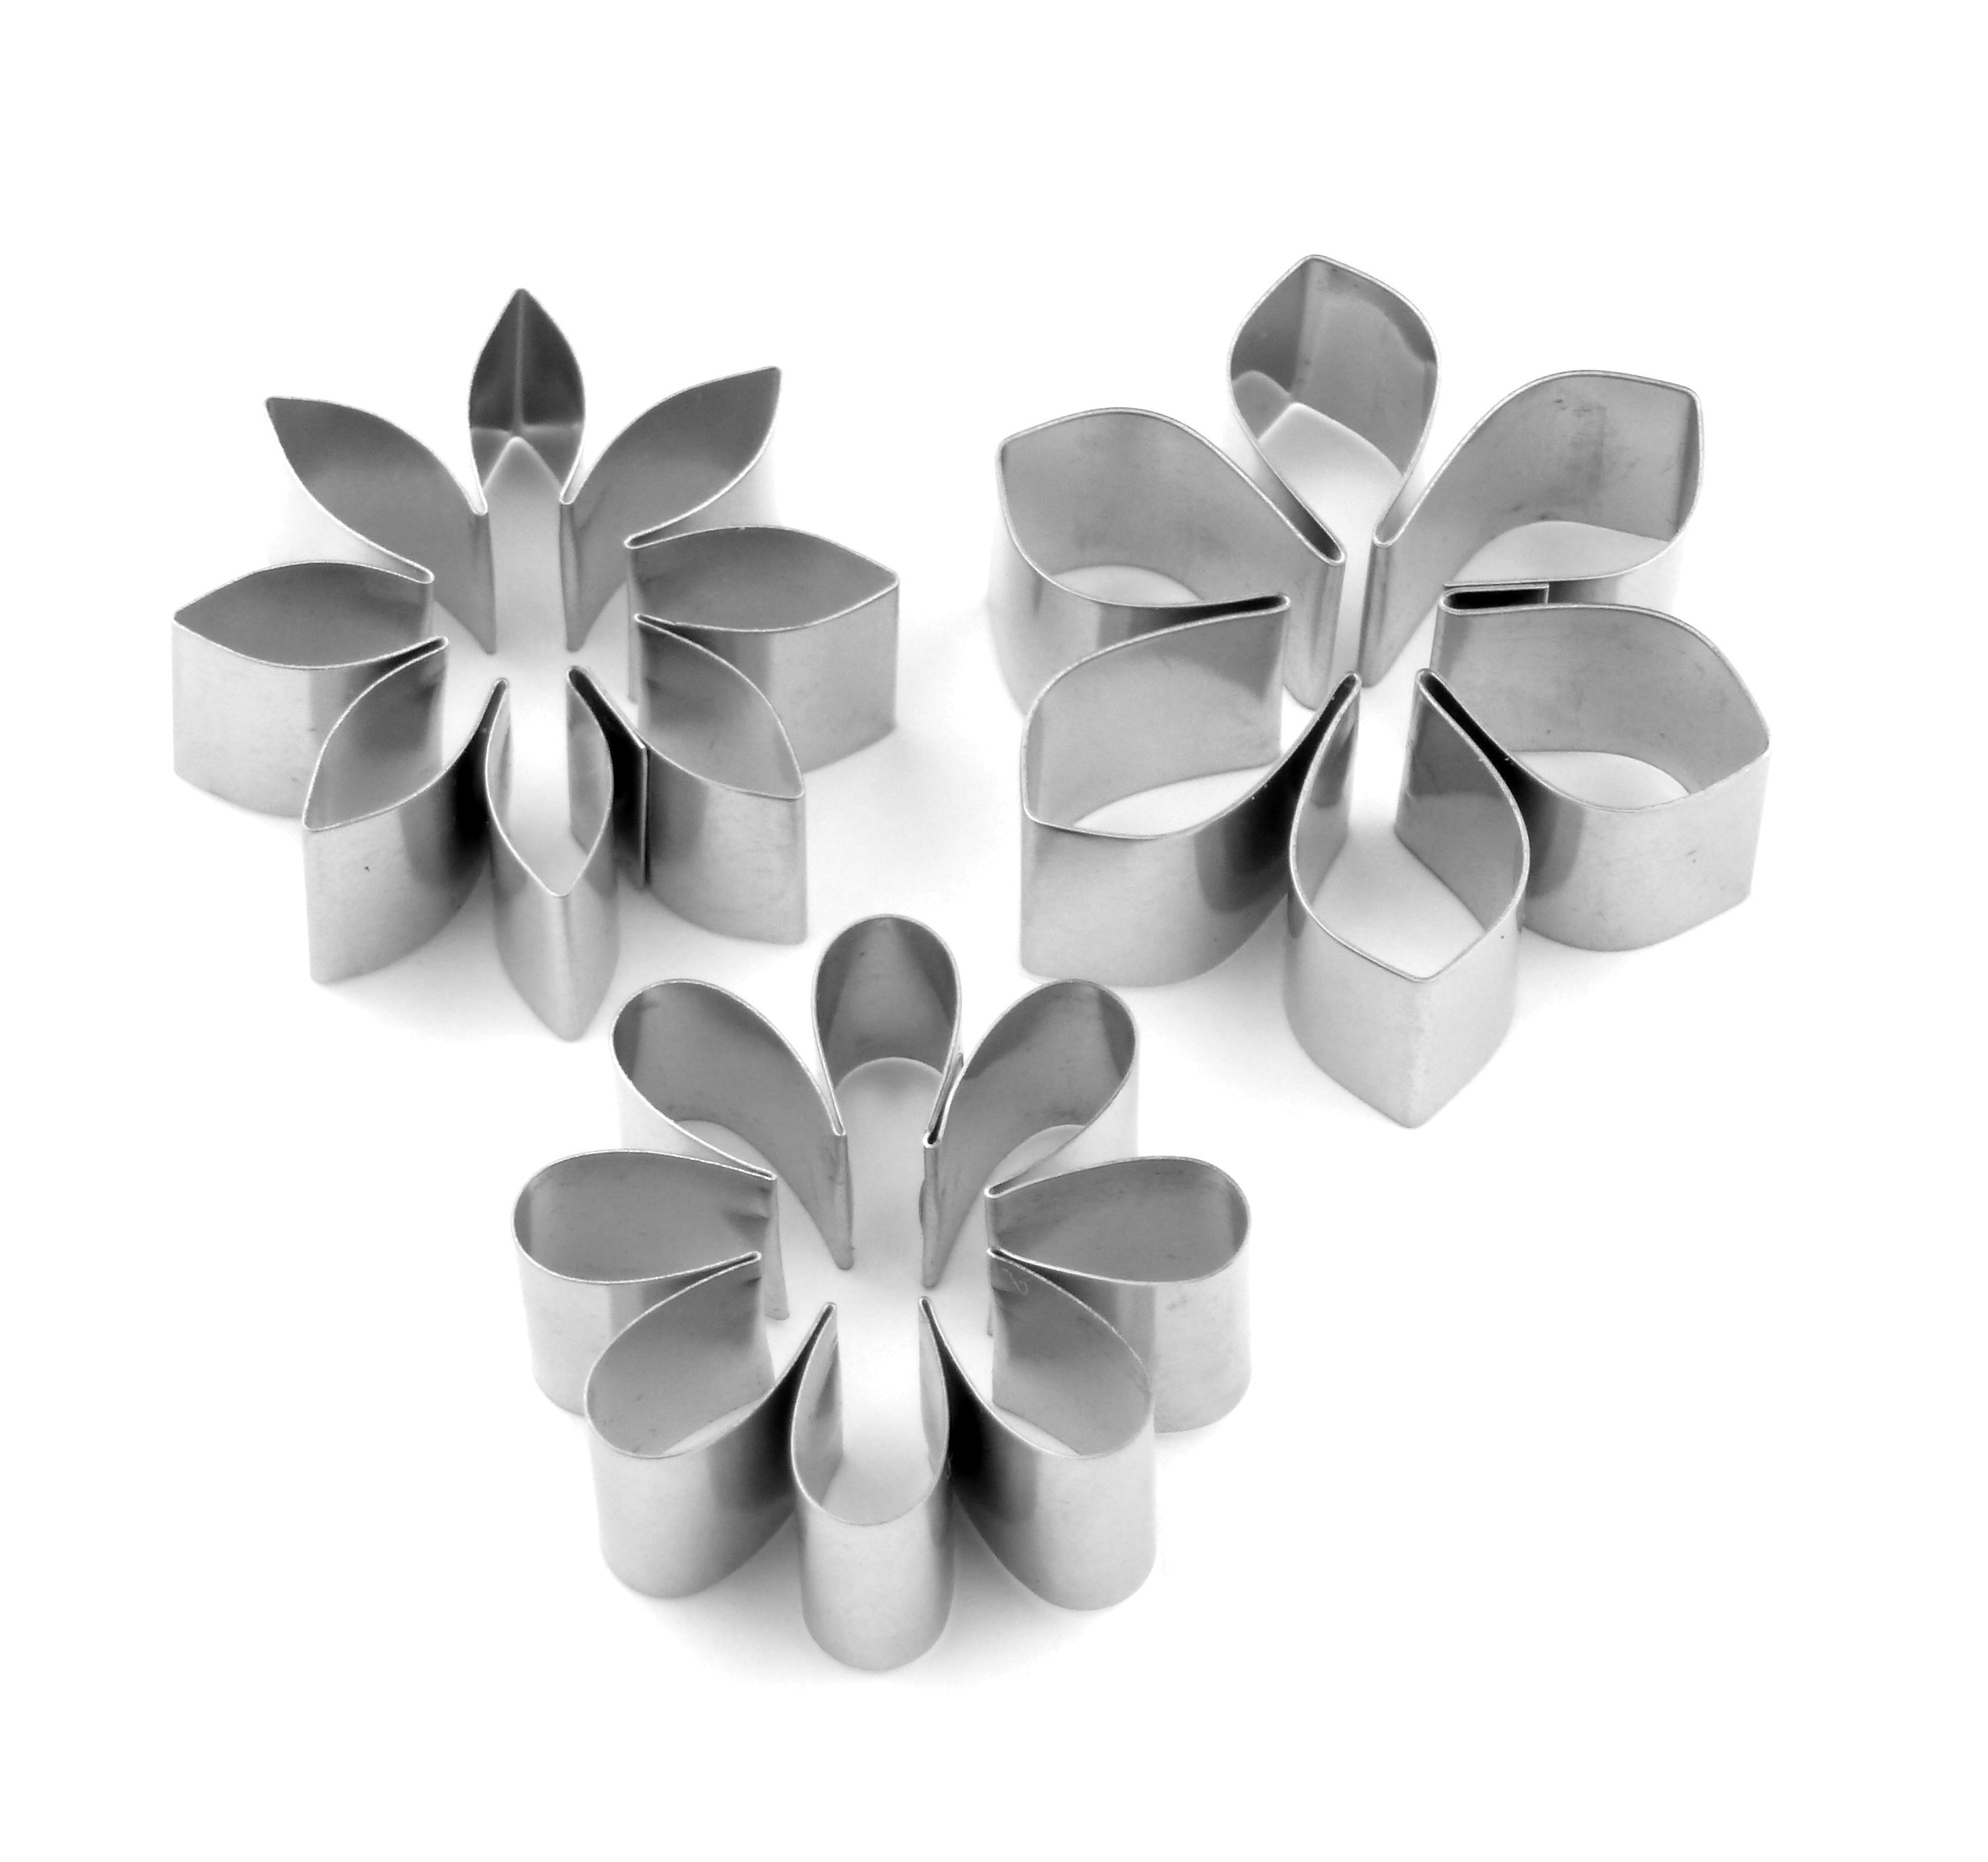 Flat Floral Sugarcraft Cutter Collection - Set 2 (Lindy's) SKU178671